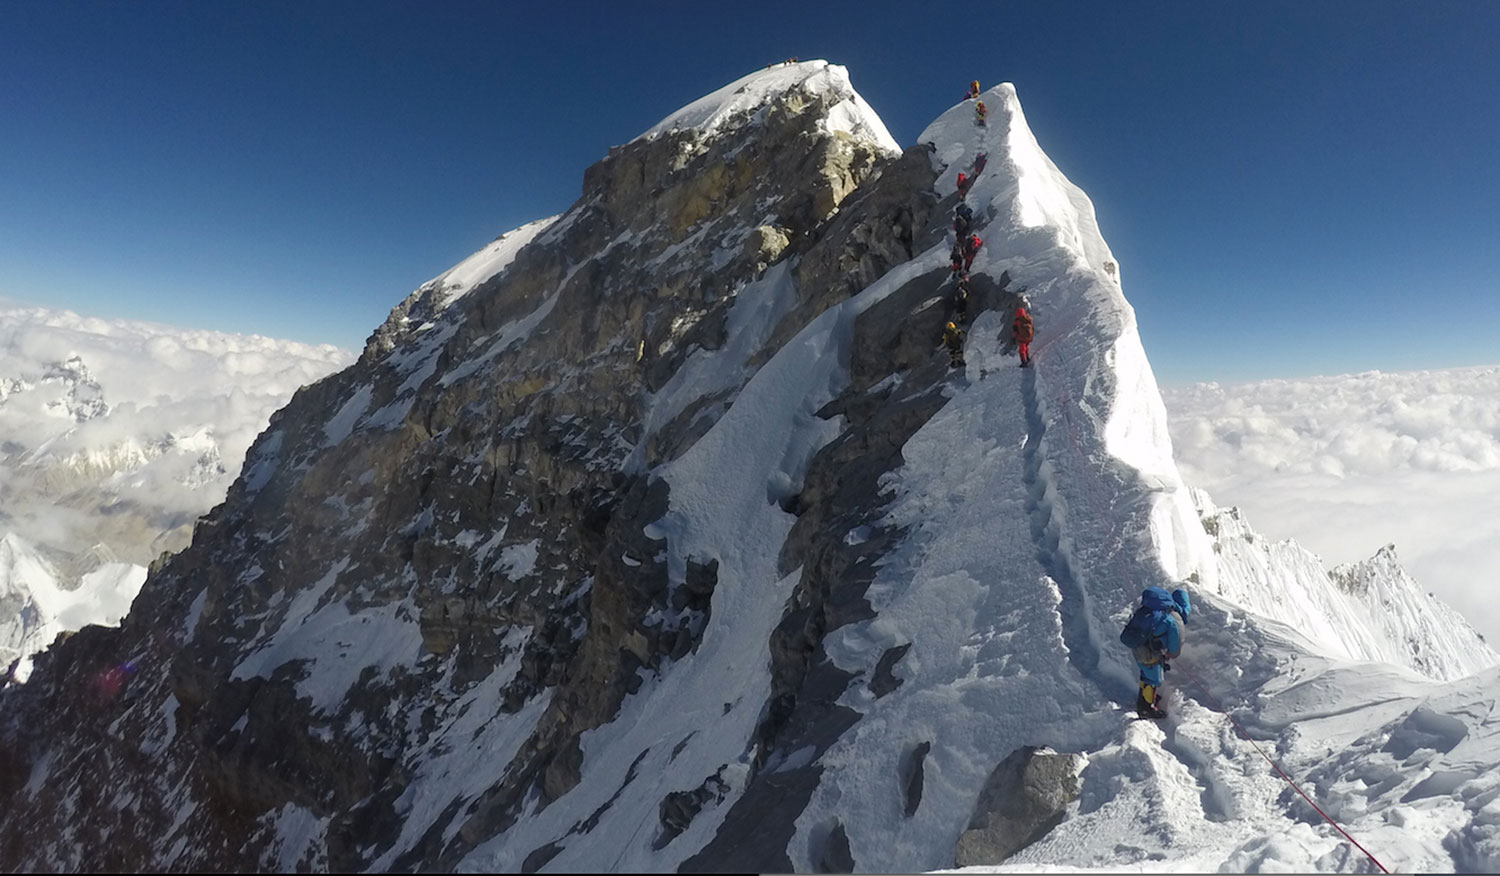 Mt Everest Climbing Expeditions With Mountain Professionals